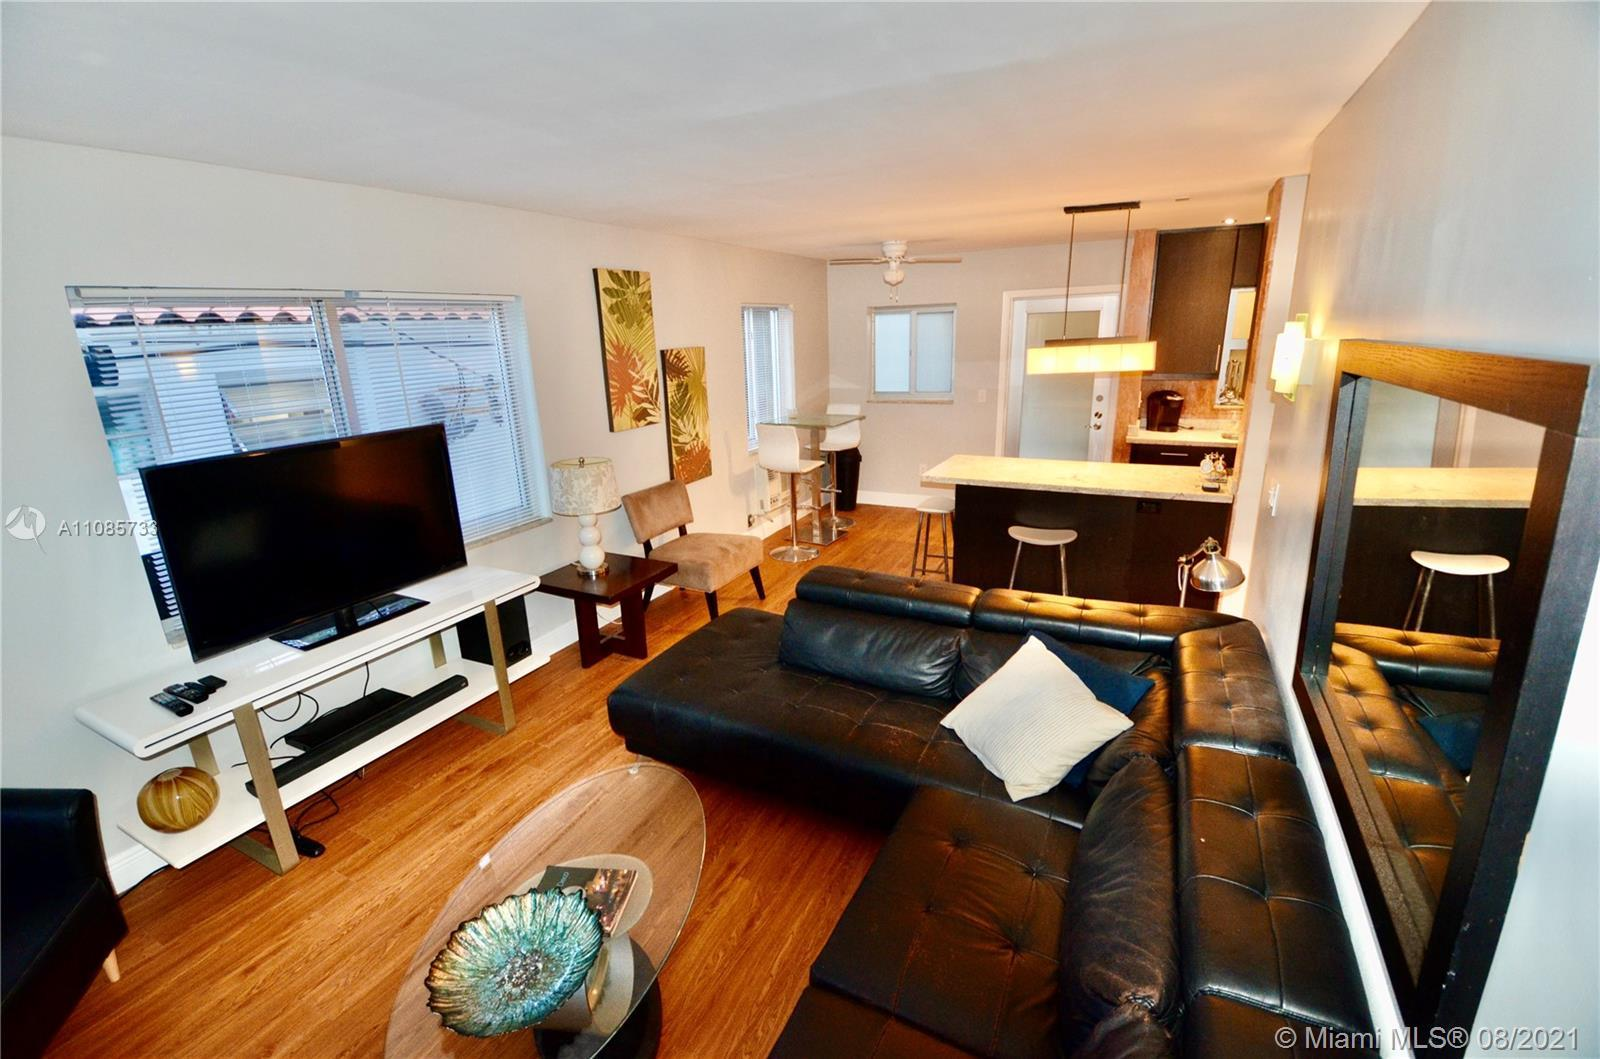 Large 1/1 corner unit(790sf),completely renovated,w lots of light!Private balcony.Gated security&ele